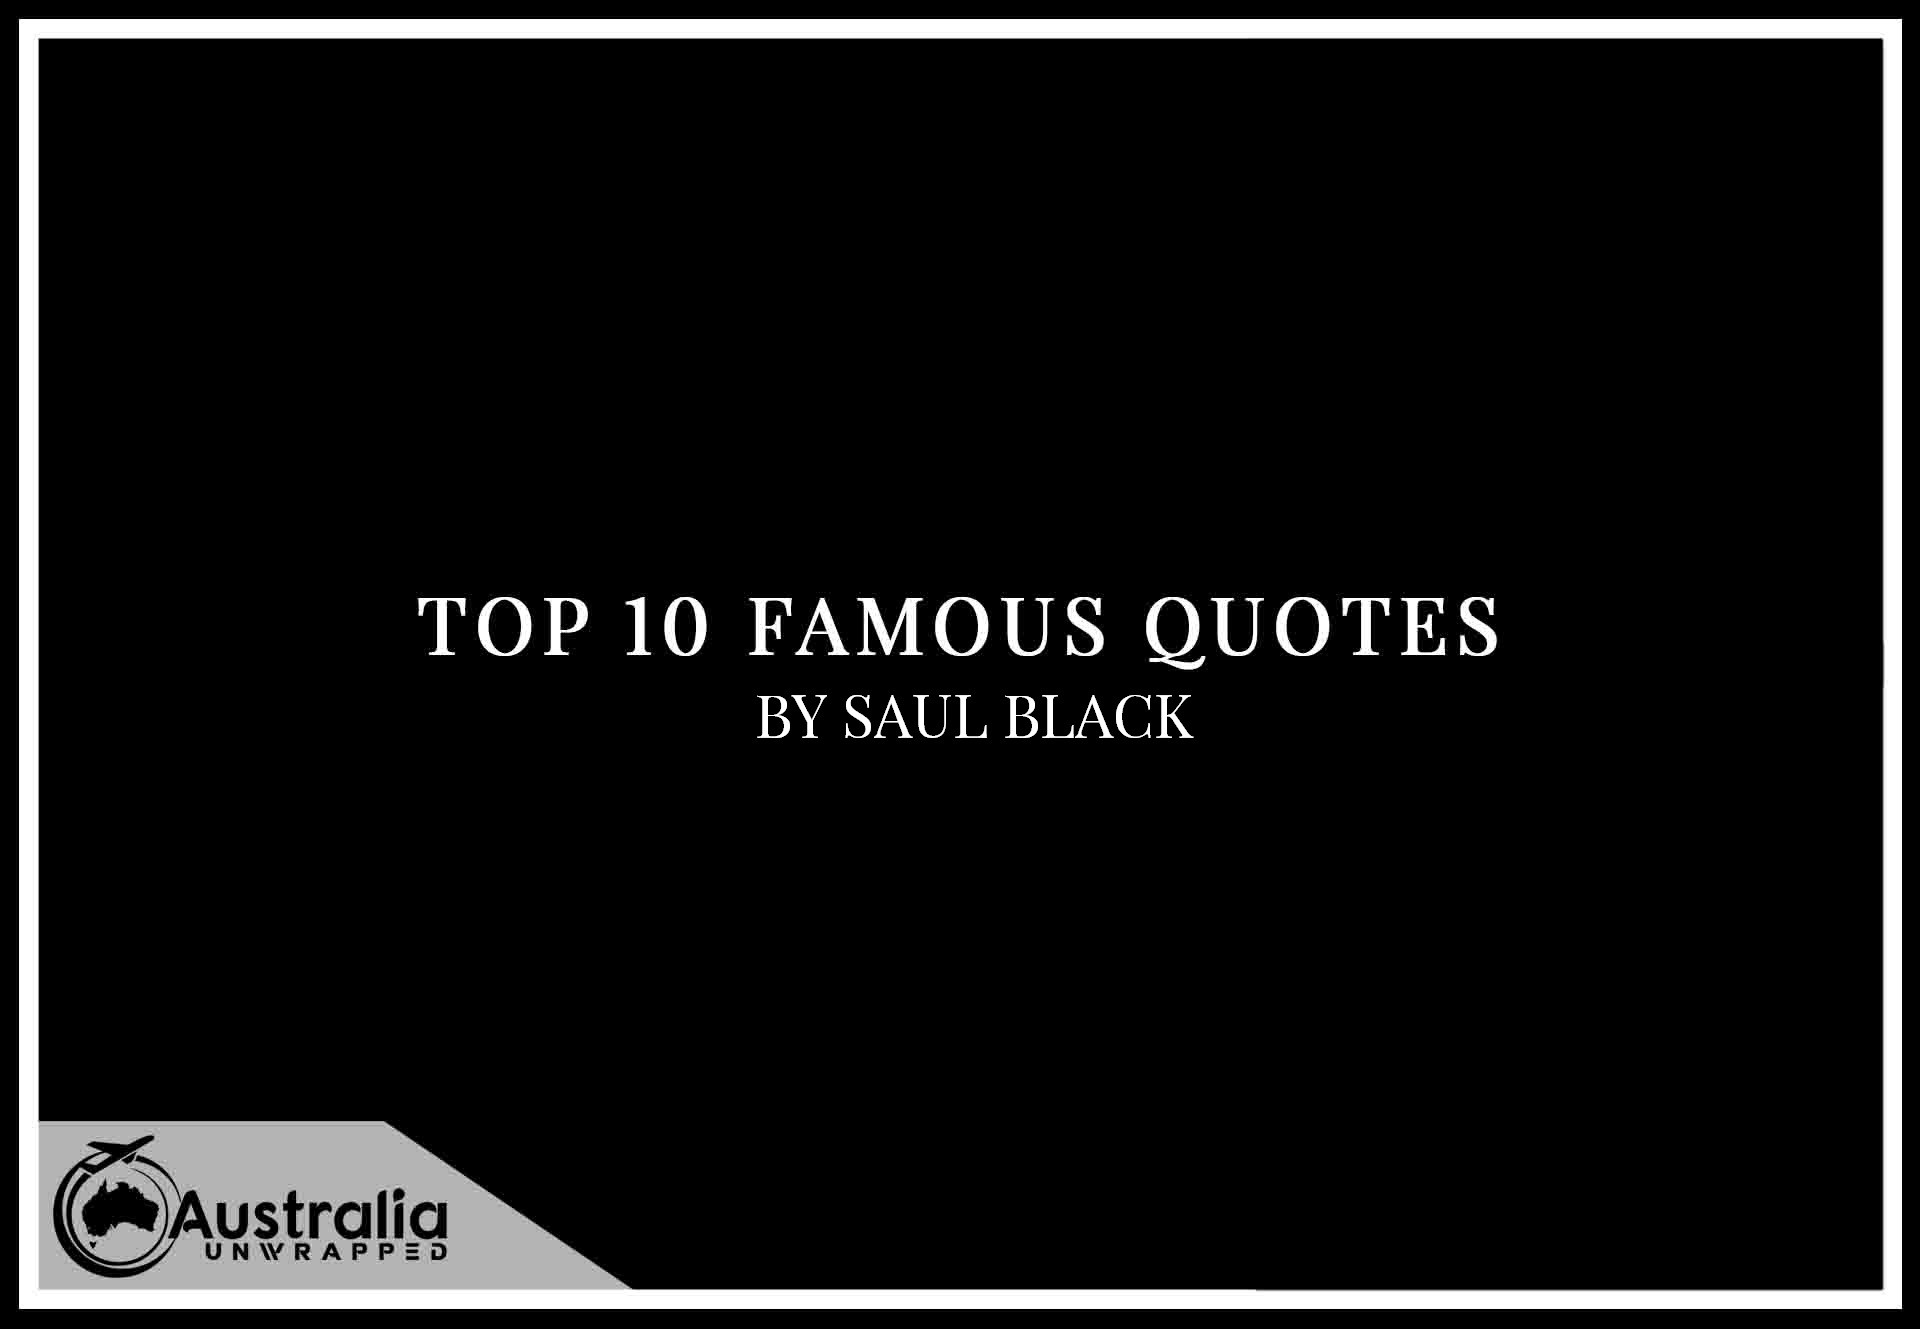 Top 10 Famous Quotes by Author Saul Black